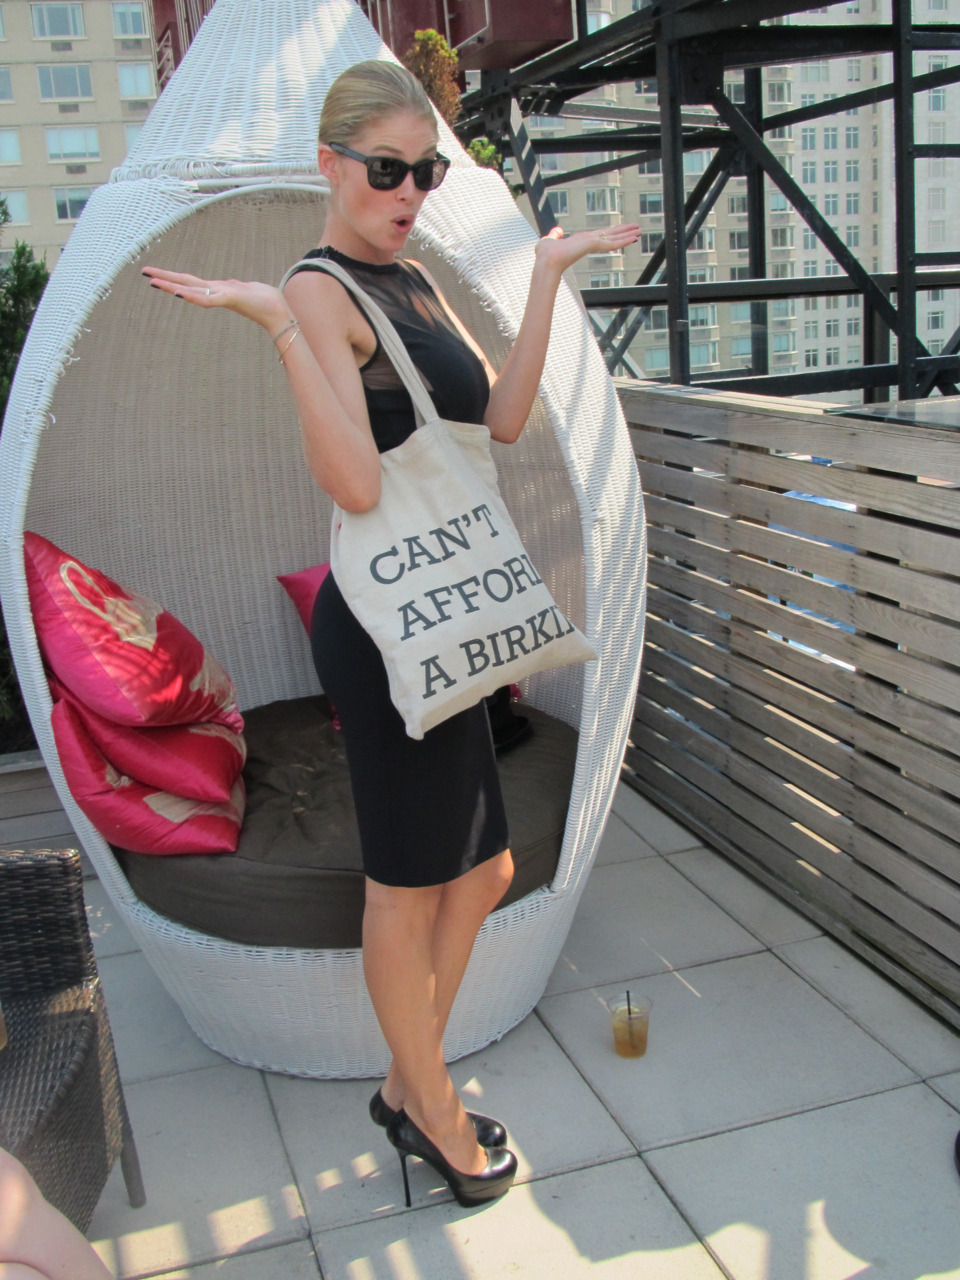 TOPMODEL DOUTZEN KROES WITH HER NEW SHOPPER BAG DURING 2011 NY FASHION WEEK